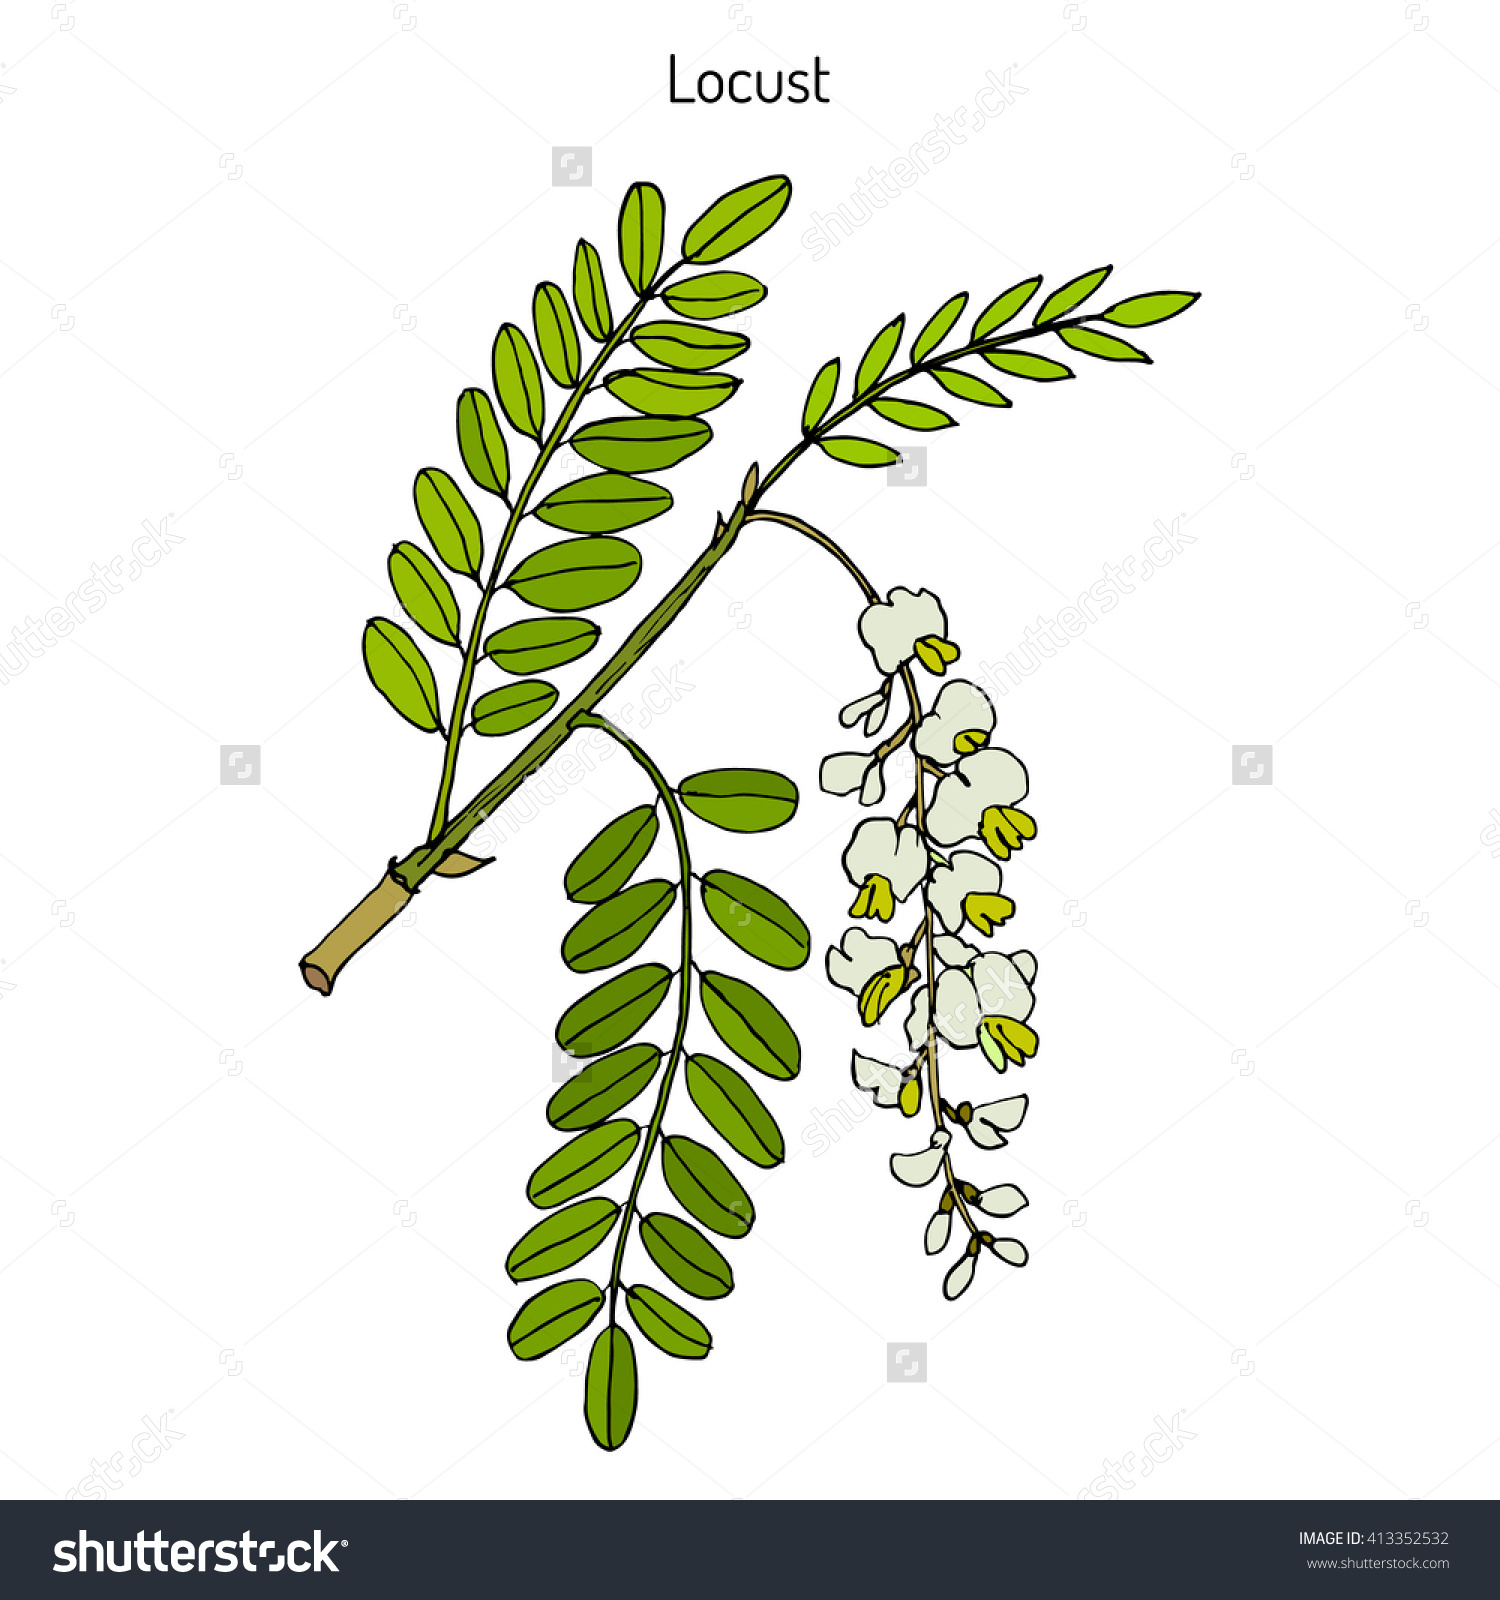 Robinia Pseudoacacia Black Locust False Acacia Stock Vector.